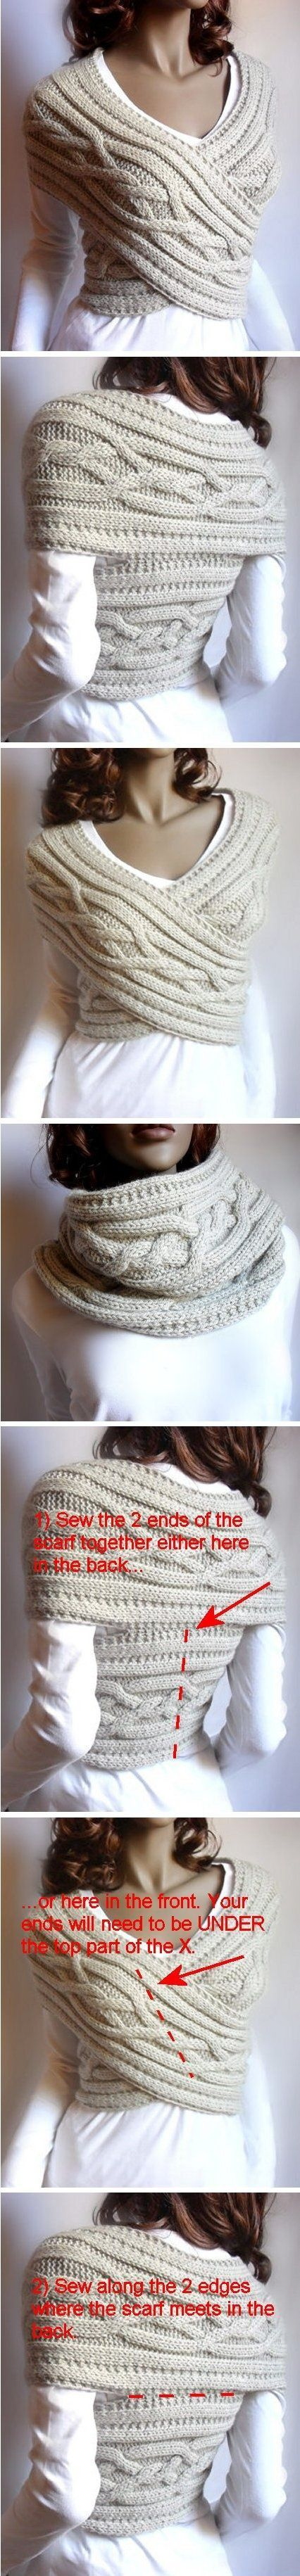 The most awesome images on the Internet | Crafts ideas | Pinterest ...